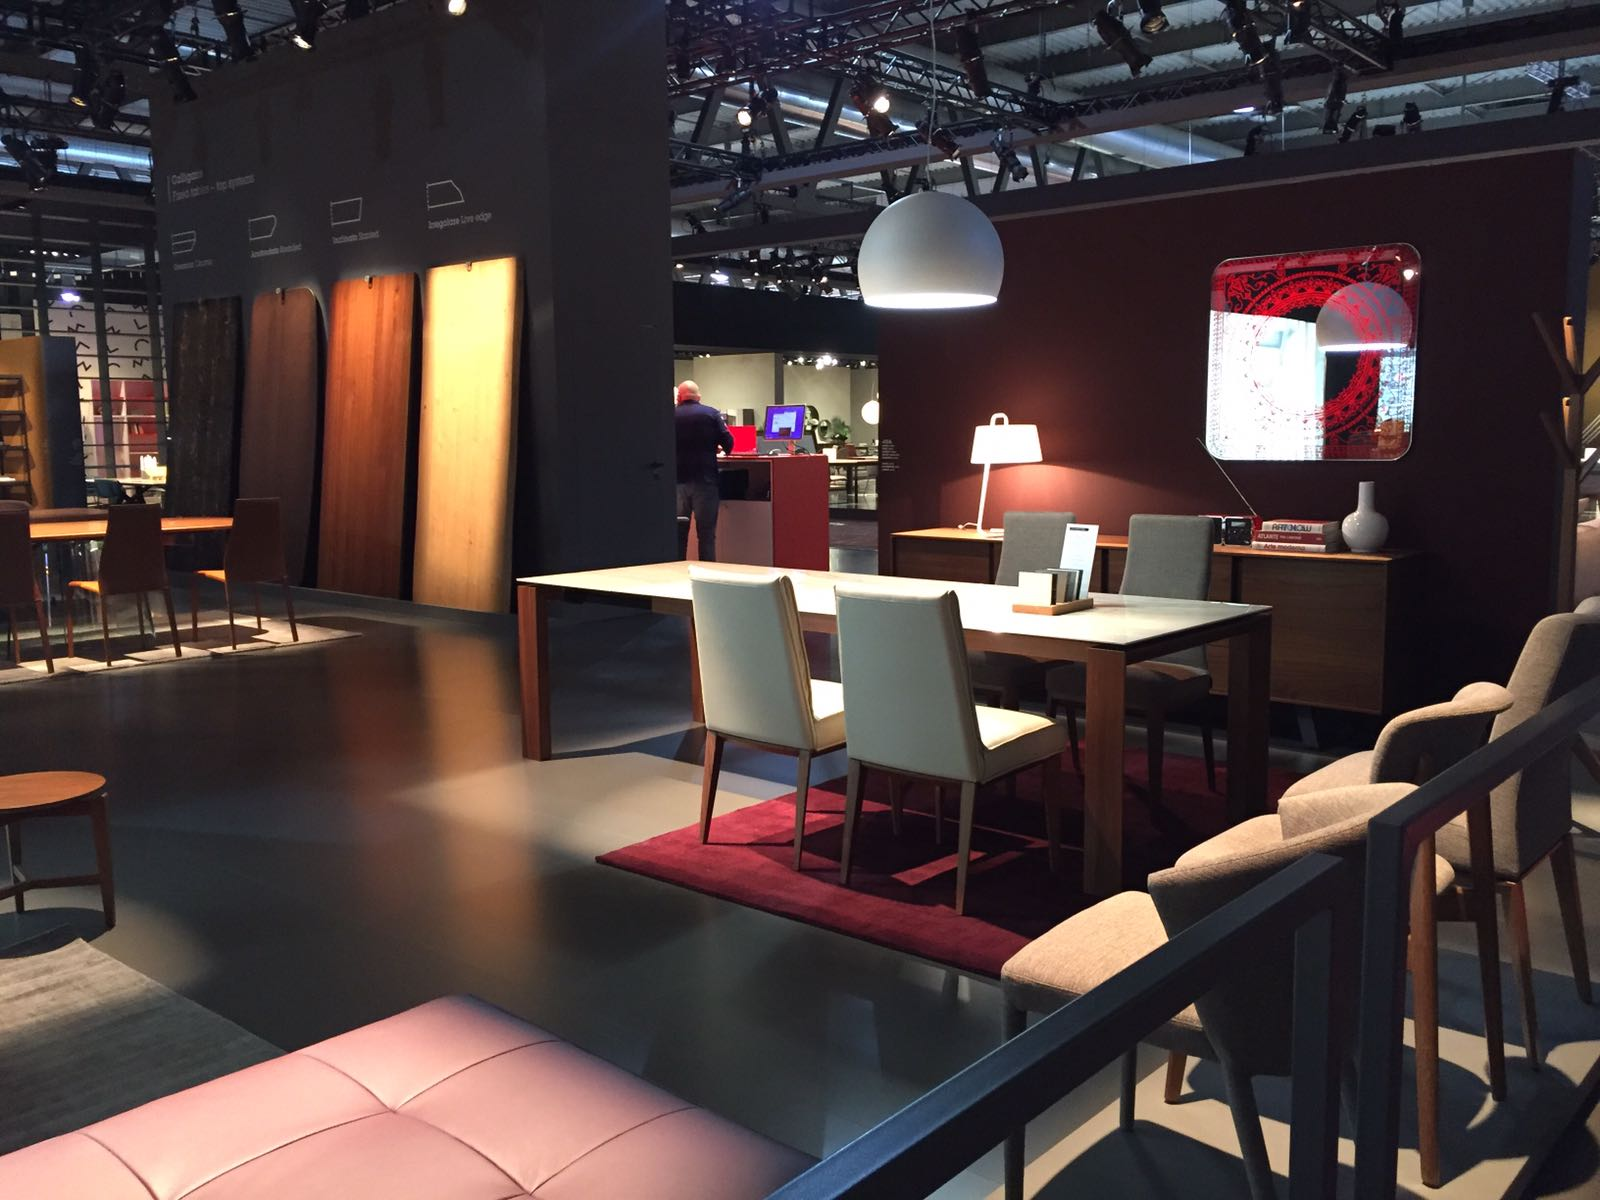 5 Color Trends Spotted at ISaloni 2017 salone del mobile 2017 5 Color Trends Spotted at Salone del Mobile 2017 5 Color Trends Spotted at Salone del Mobile 2017 5